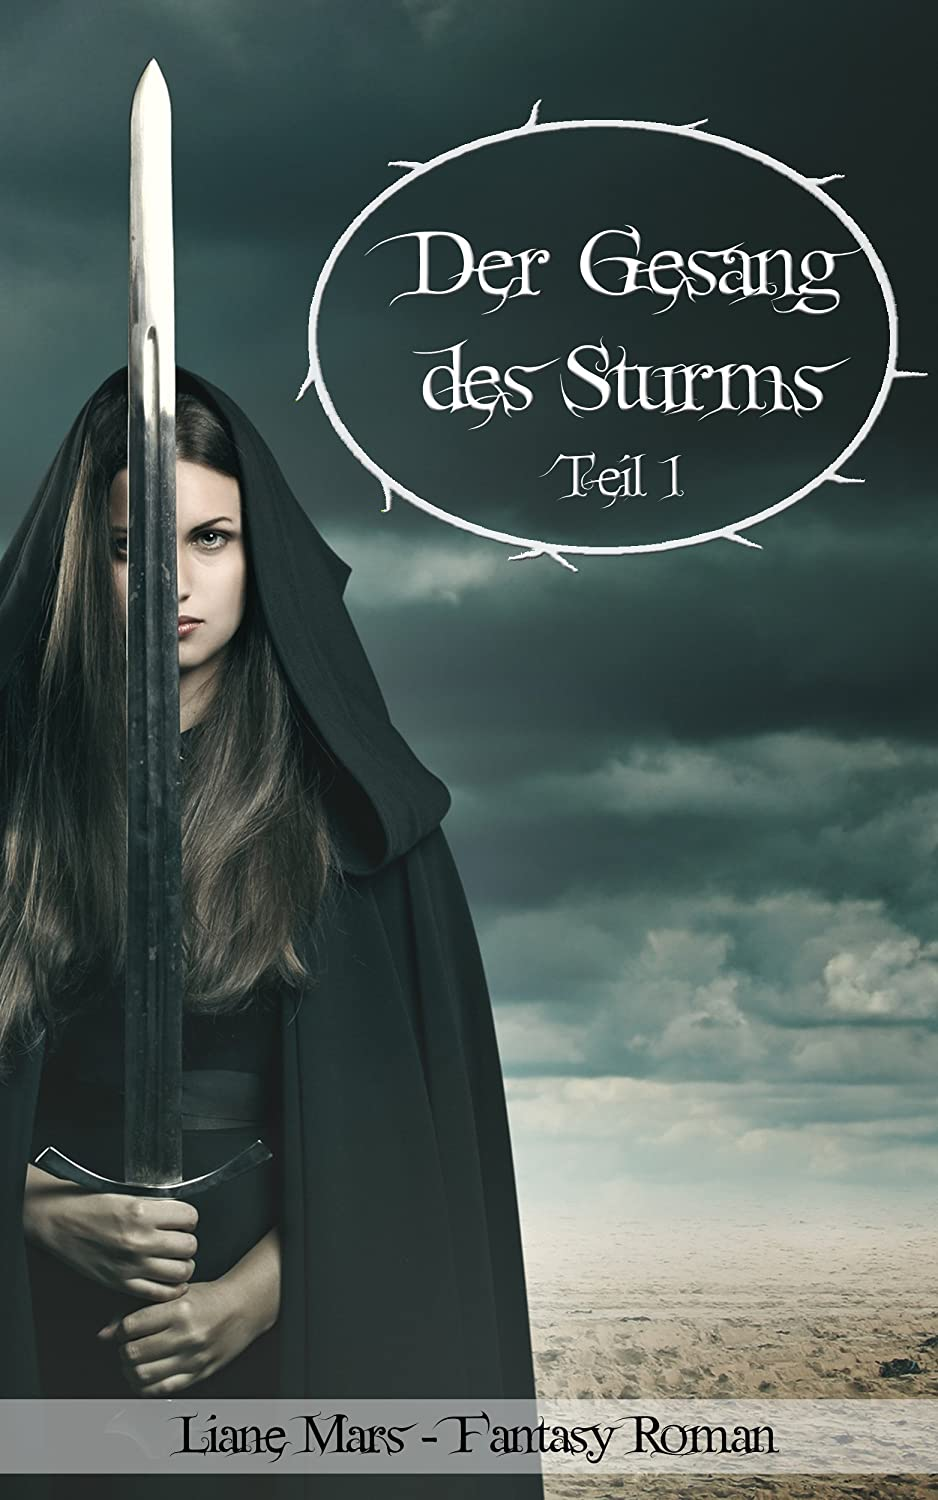 http://www.amazon.de/Gesang-Sturms-Fantasy-Roman-Sturm-Dilogie-ebook/dp/B011VFGGN2/ref=sr_1_1?ie=UTF8&qid=1437398539&sr=8-1&keywords=Der+Gesang+des+Sturms